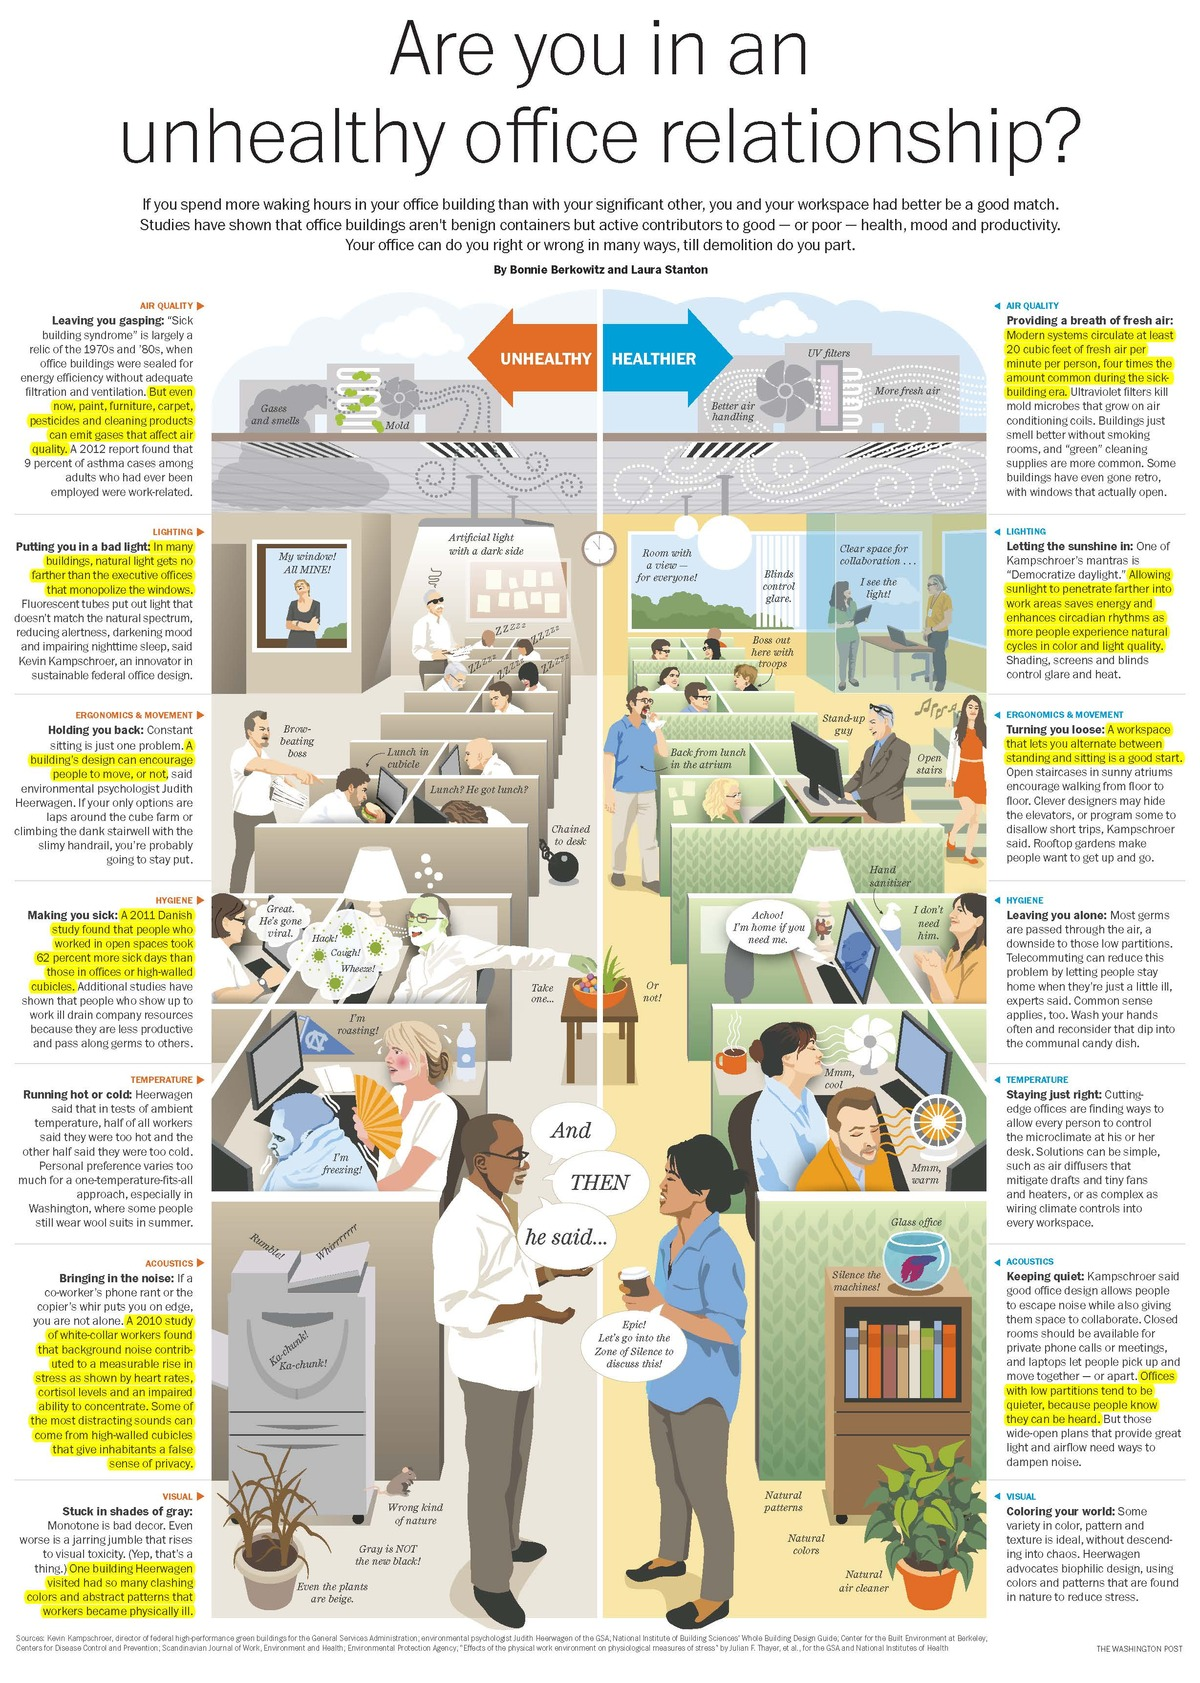 Are you in an unhealthy office relationship_Wash Post 2